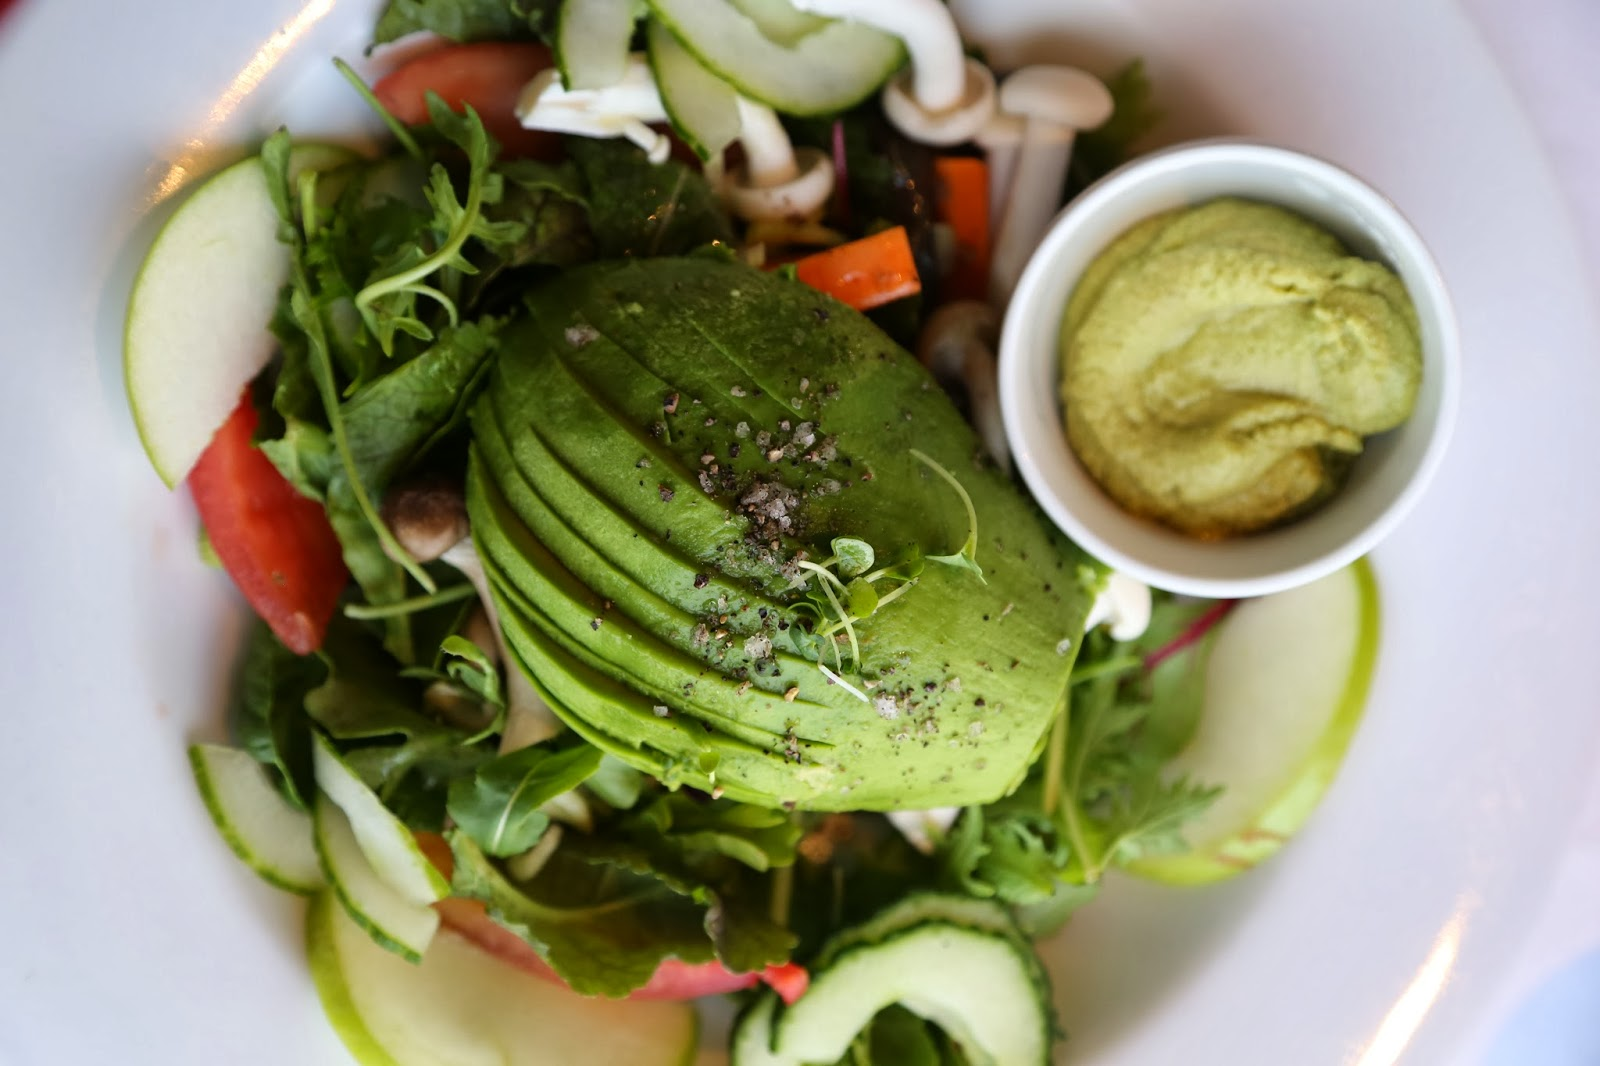 Green Goddess dressing with avocado salad at the 12 Apostles hotel